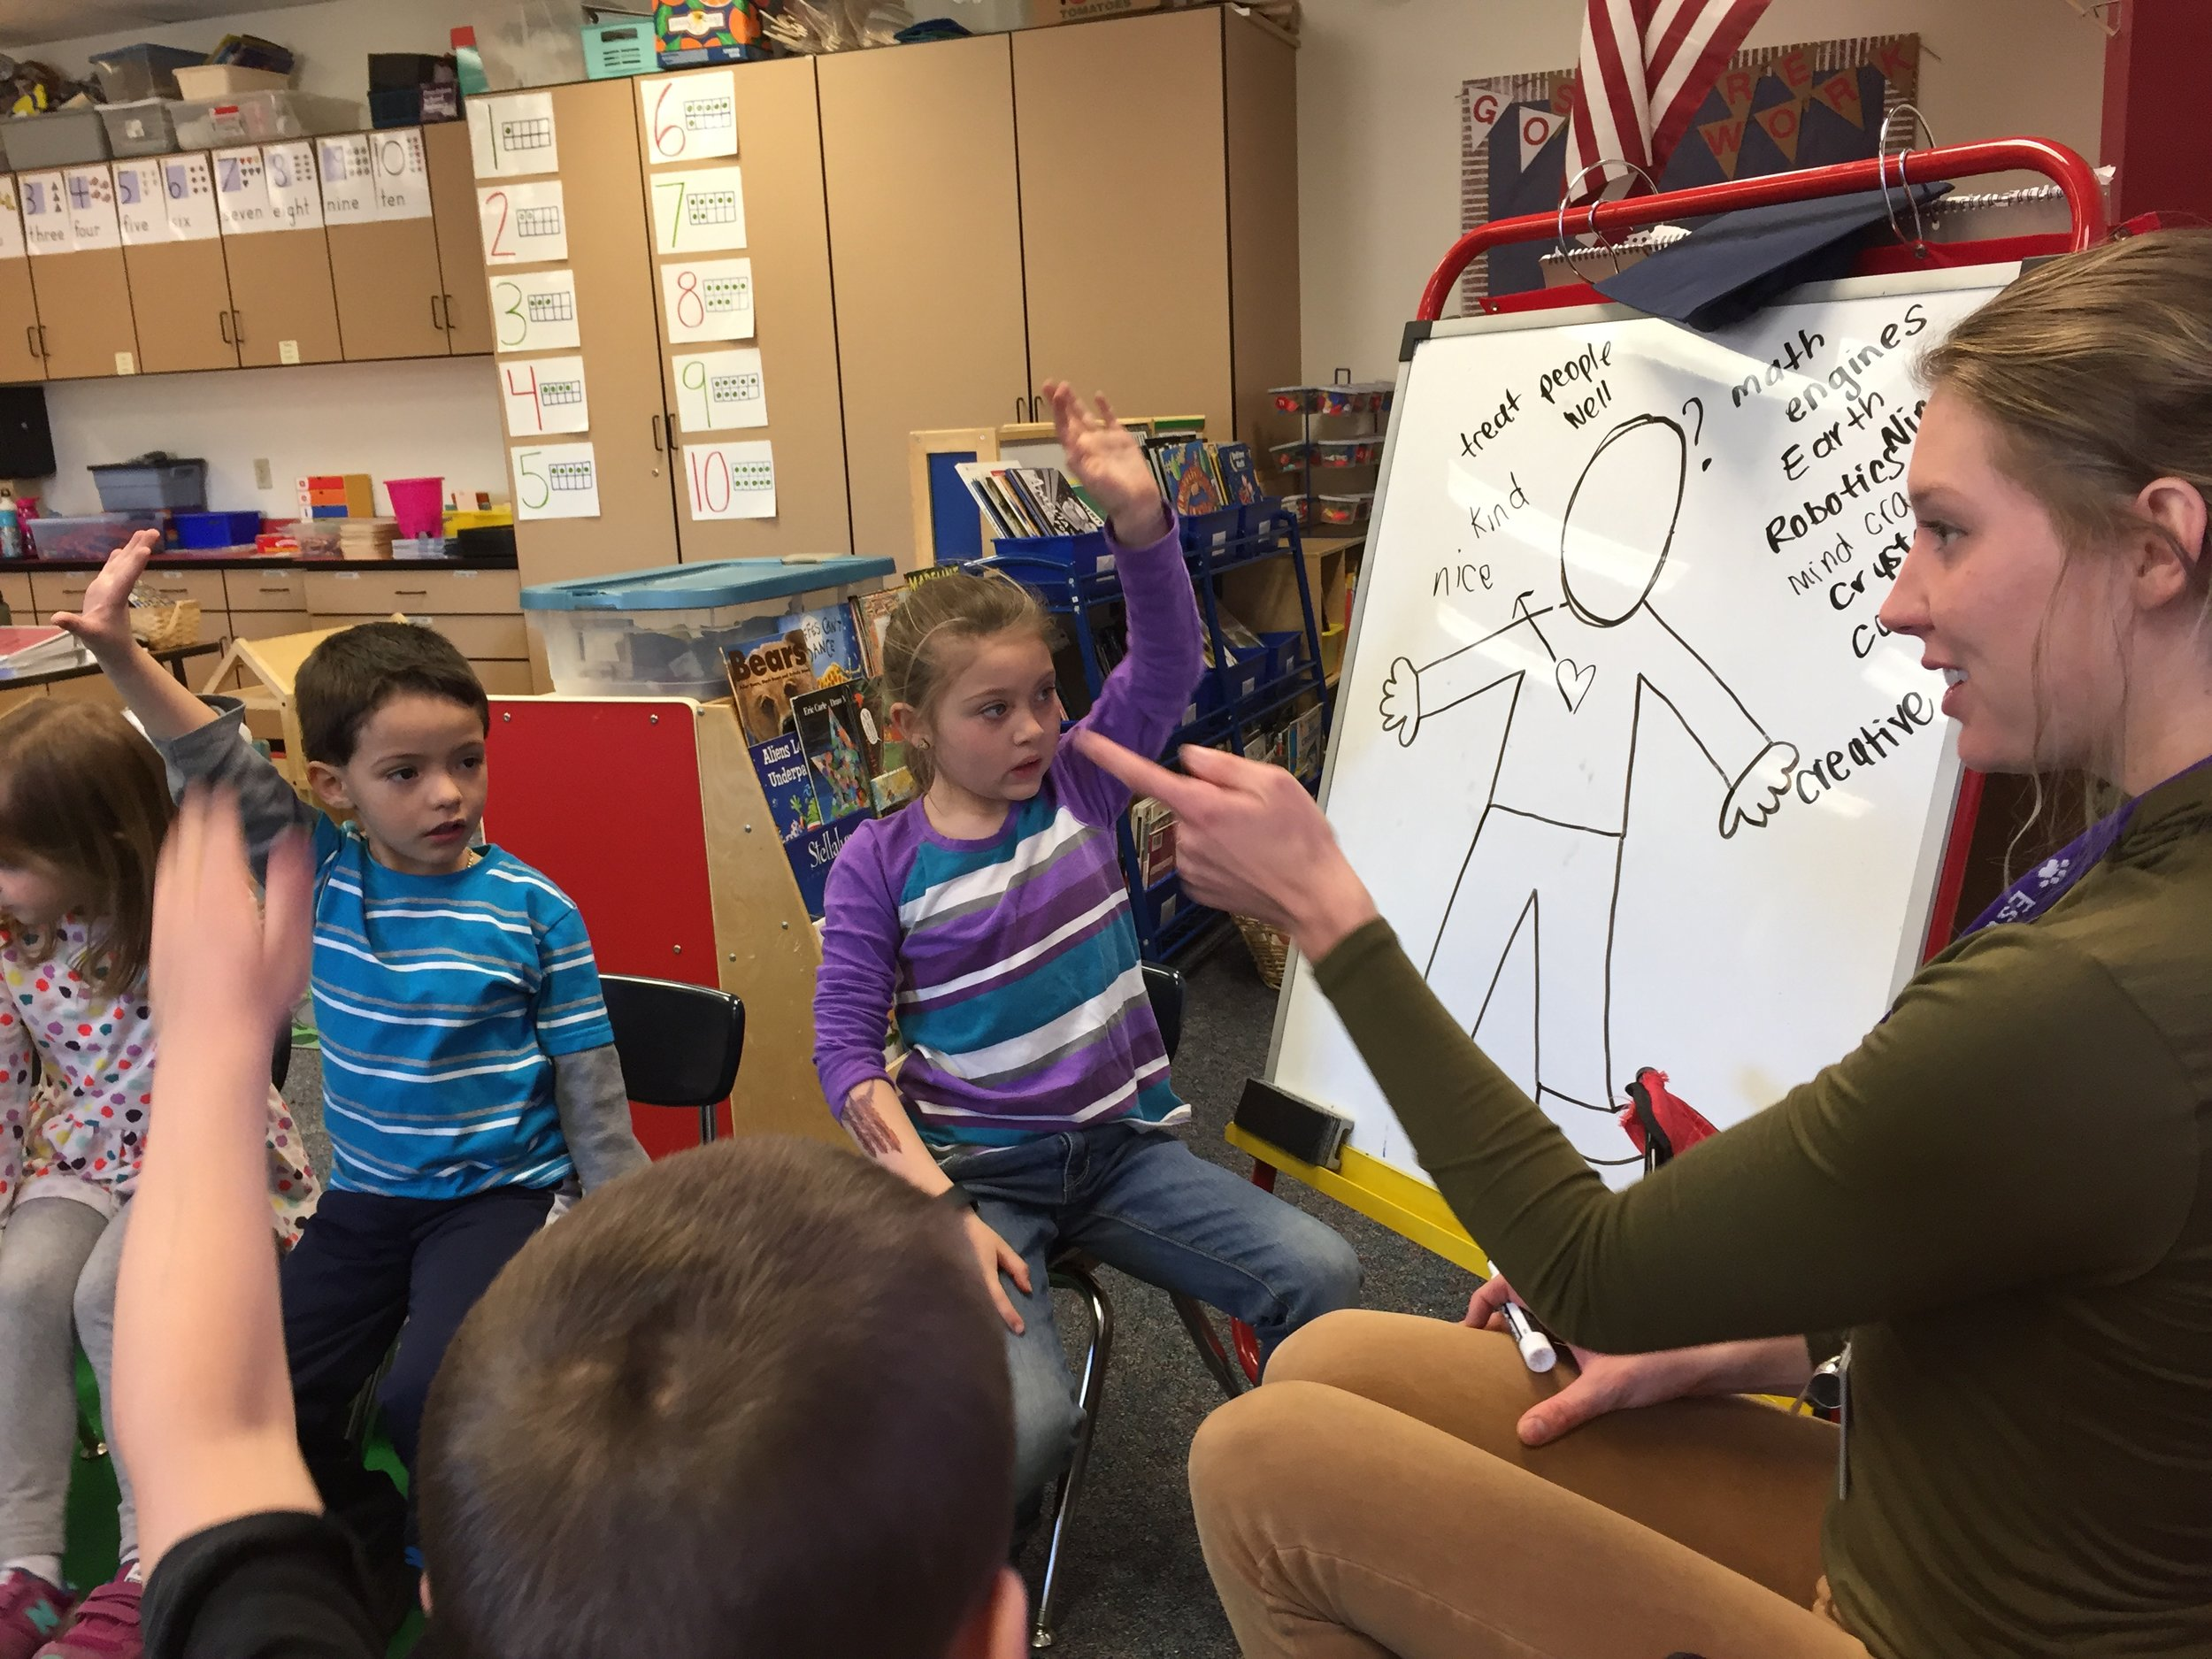 NLC participation from Kindergarten students gave an unlikely spin on the data and feedback collected.